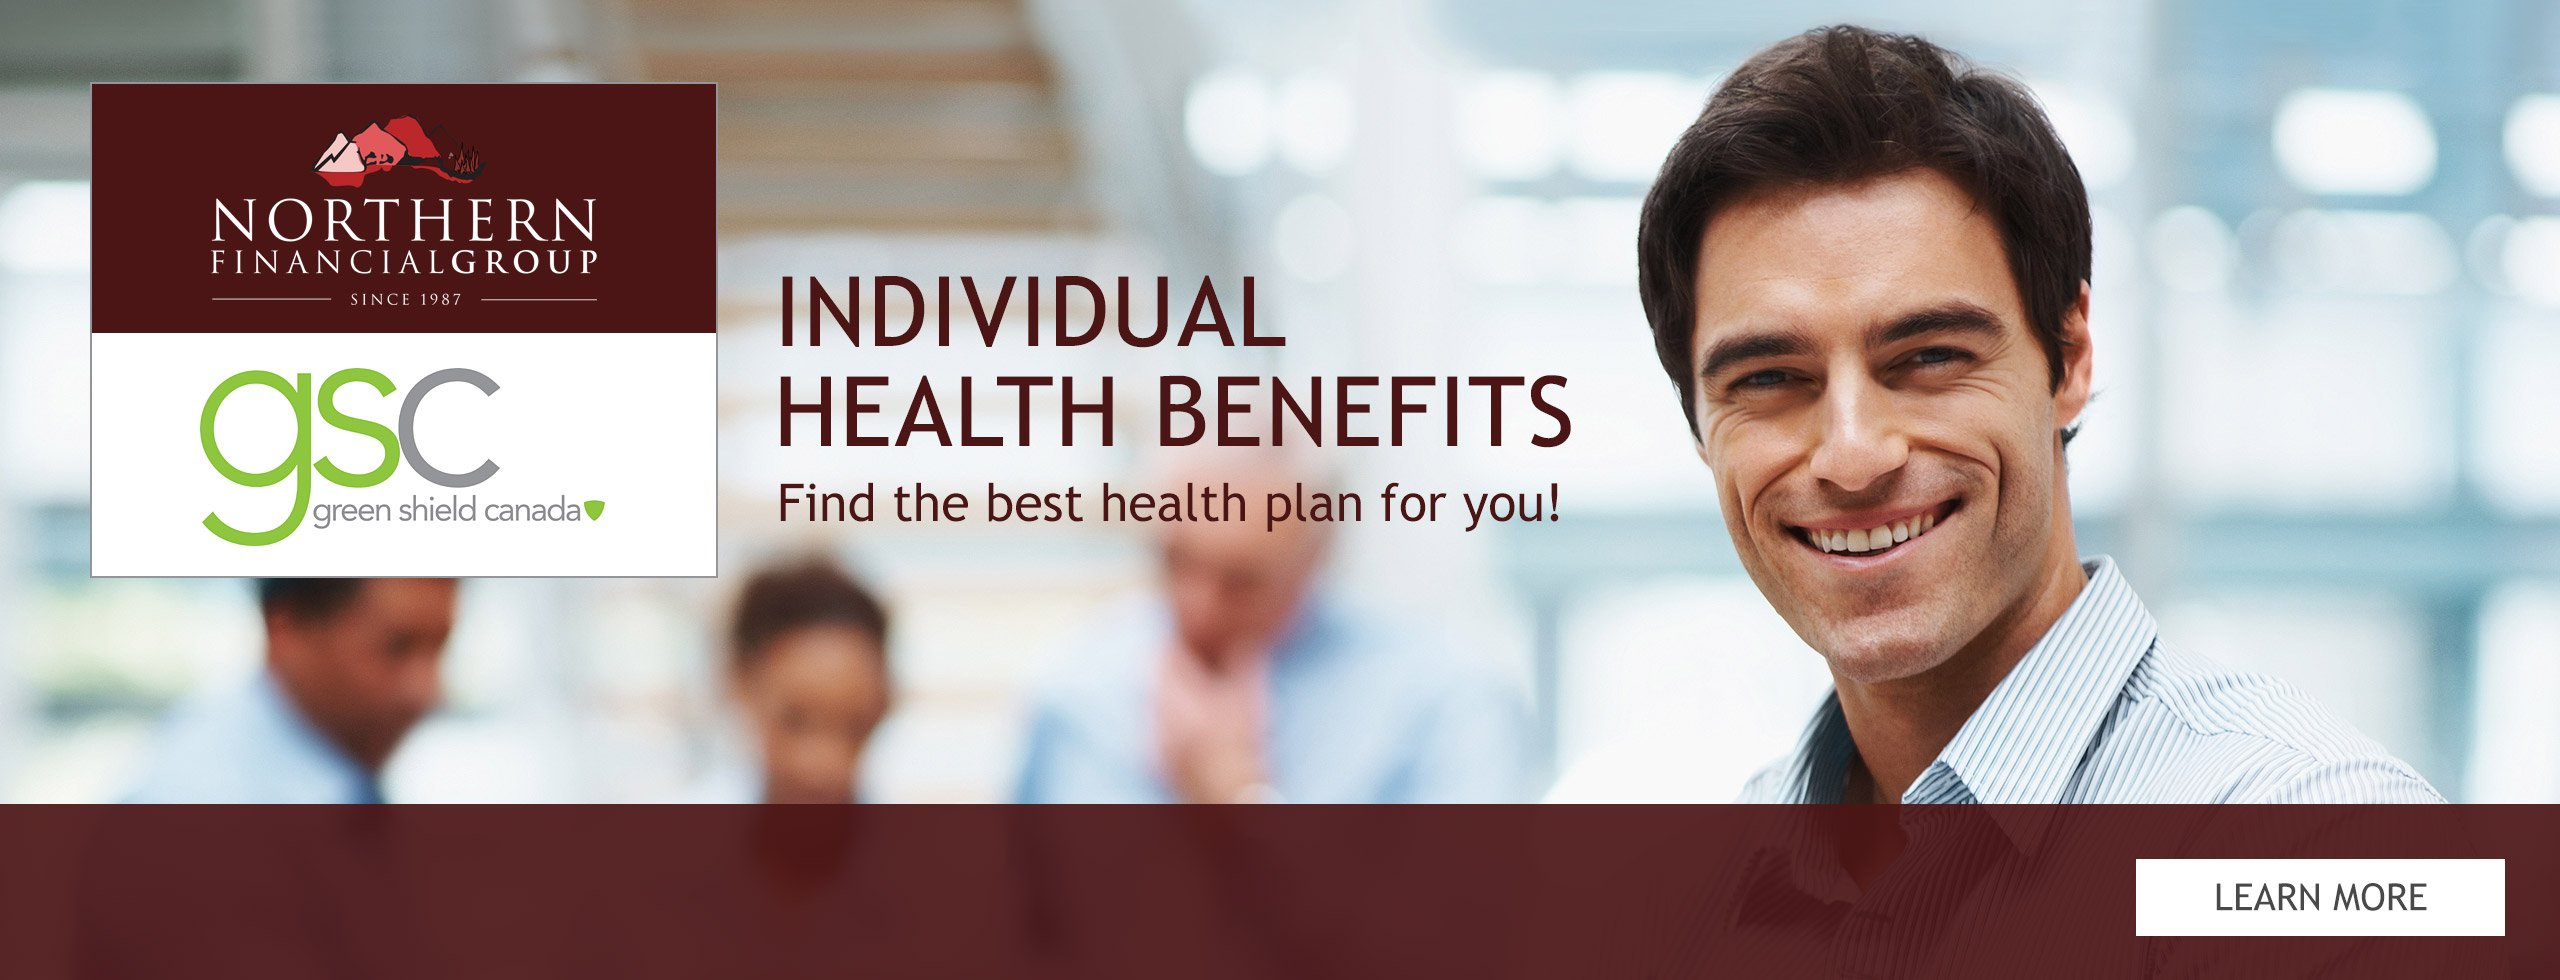 individual health benefits